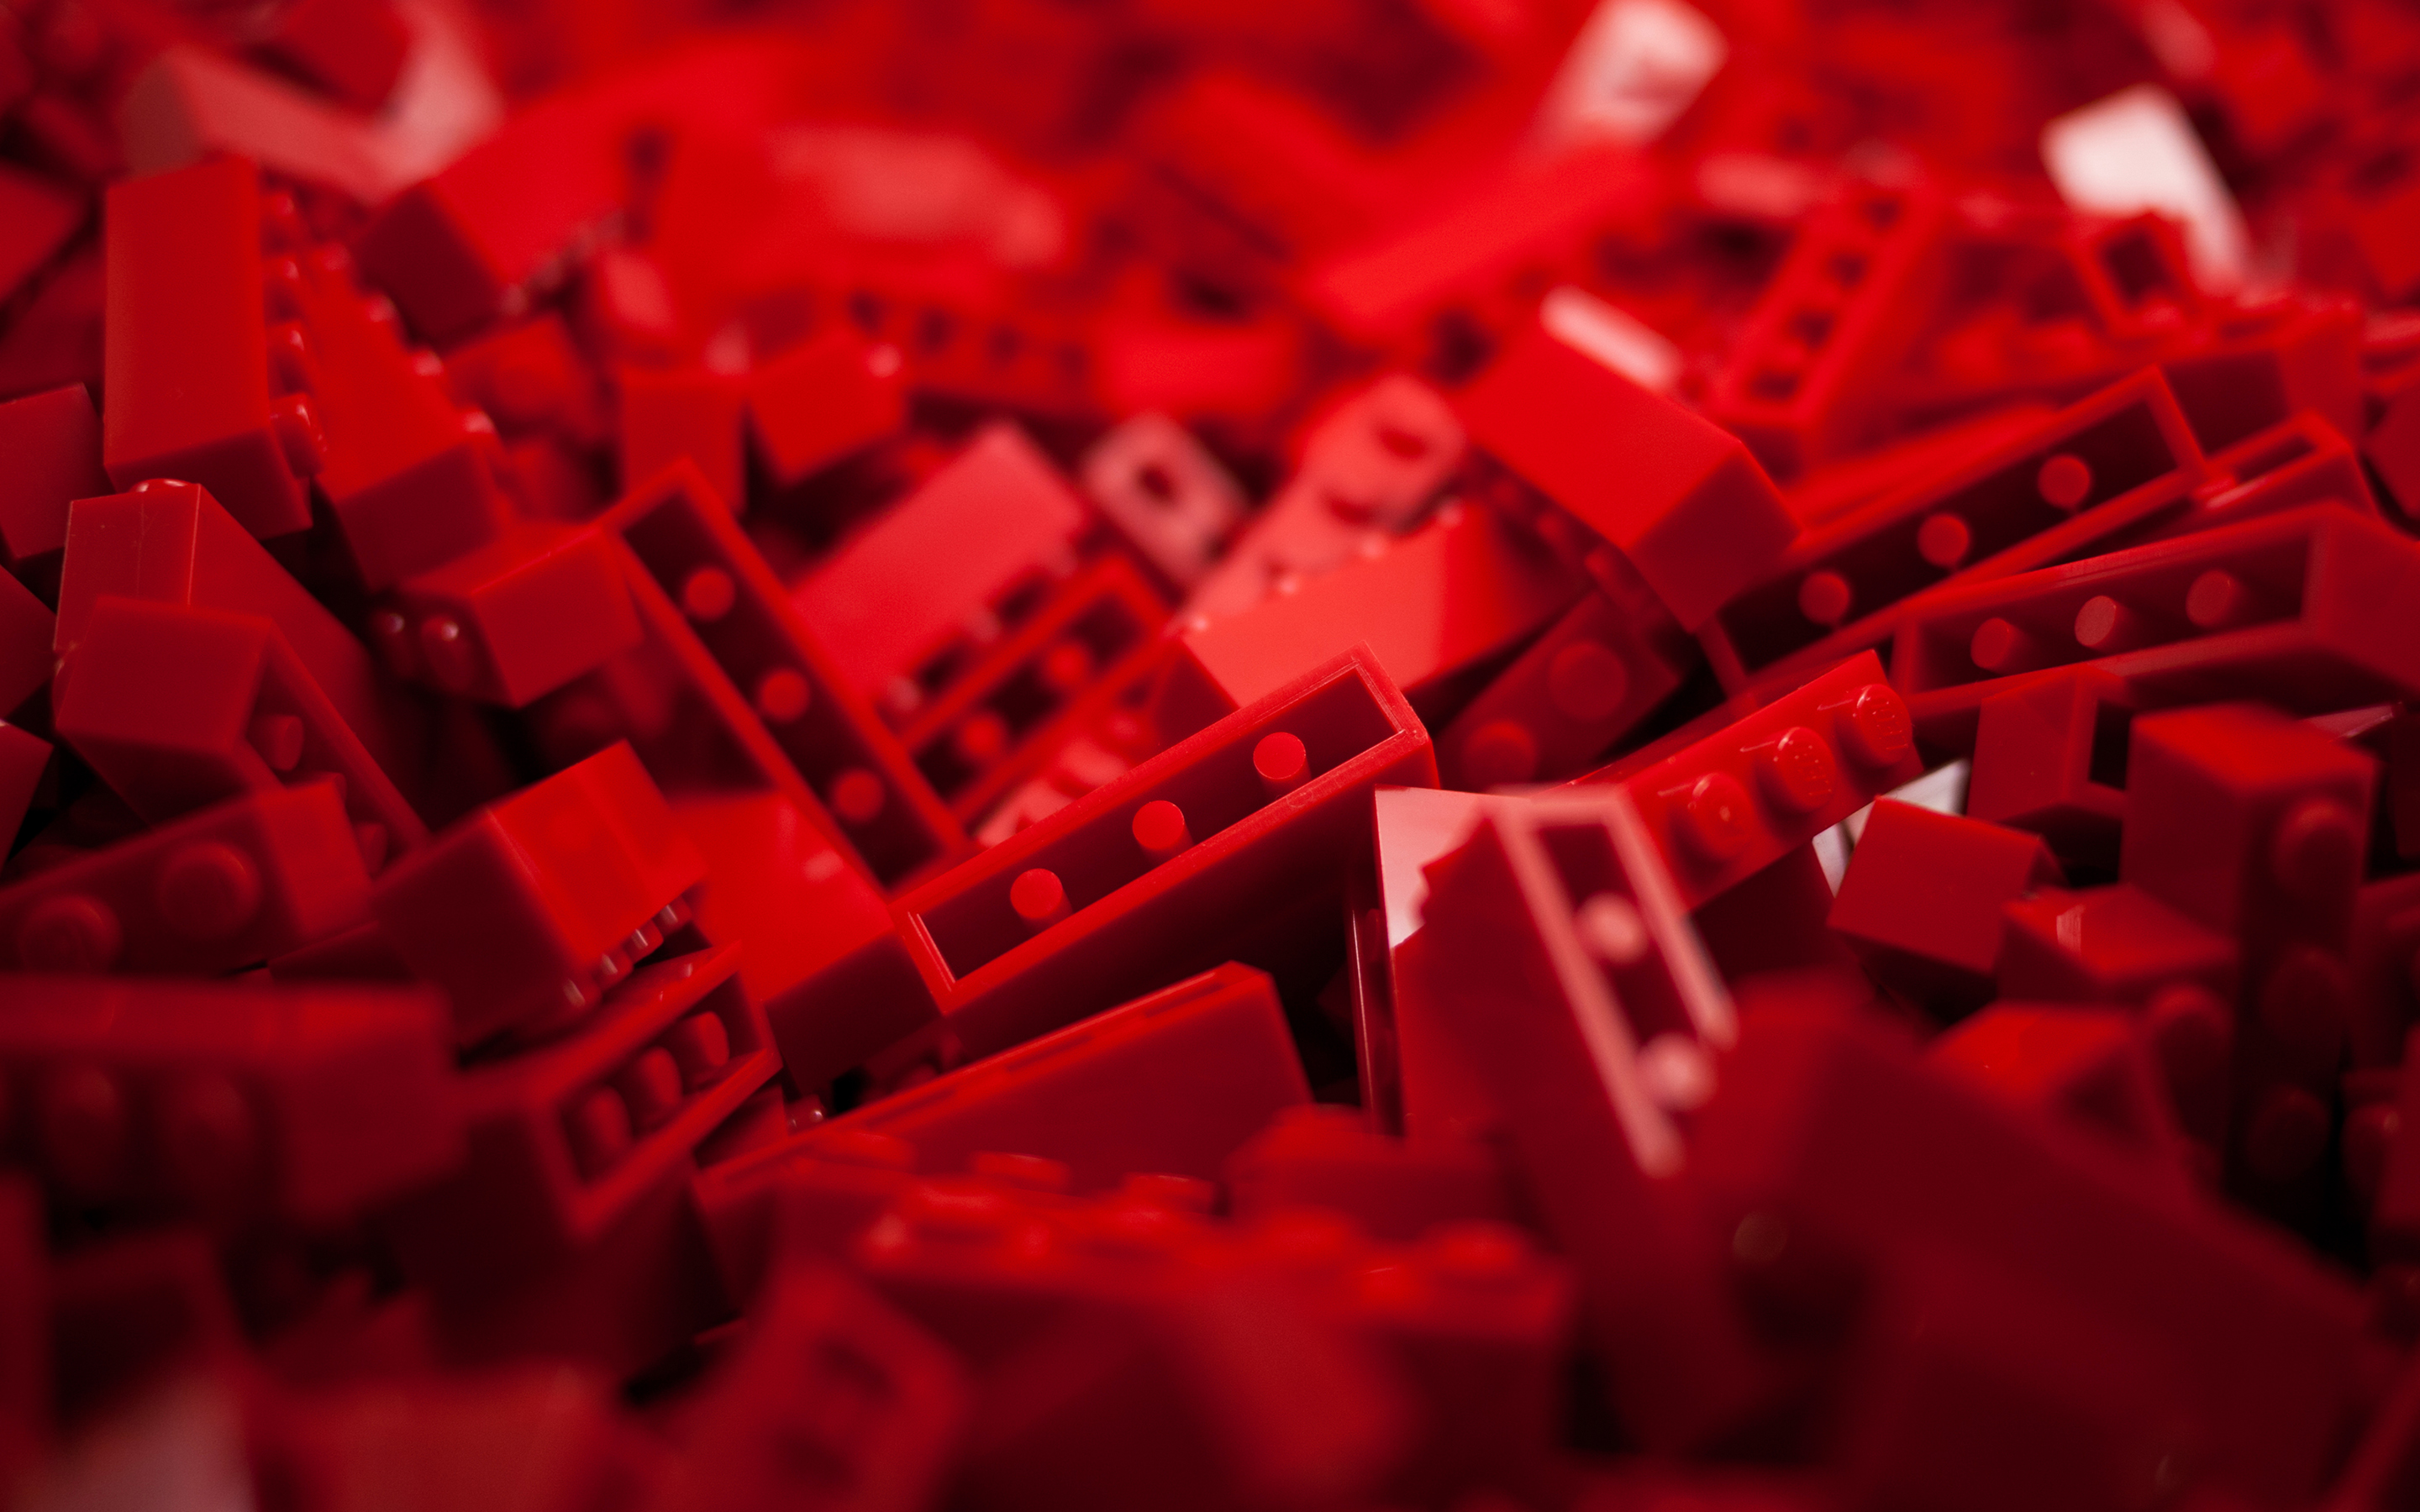 Lego Macro Red abstract toys wallpaper